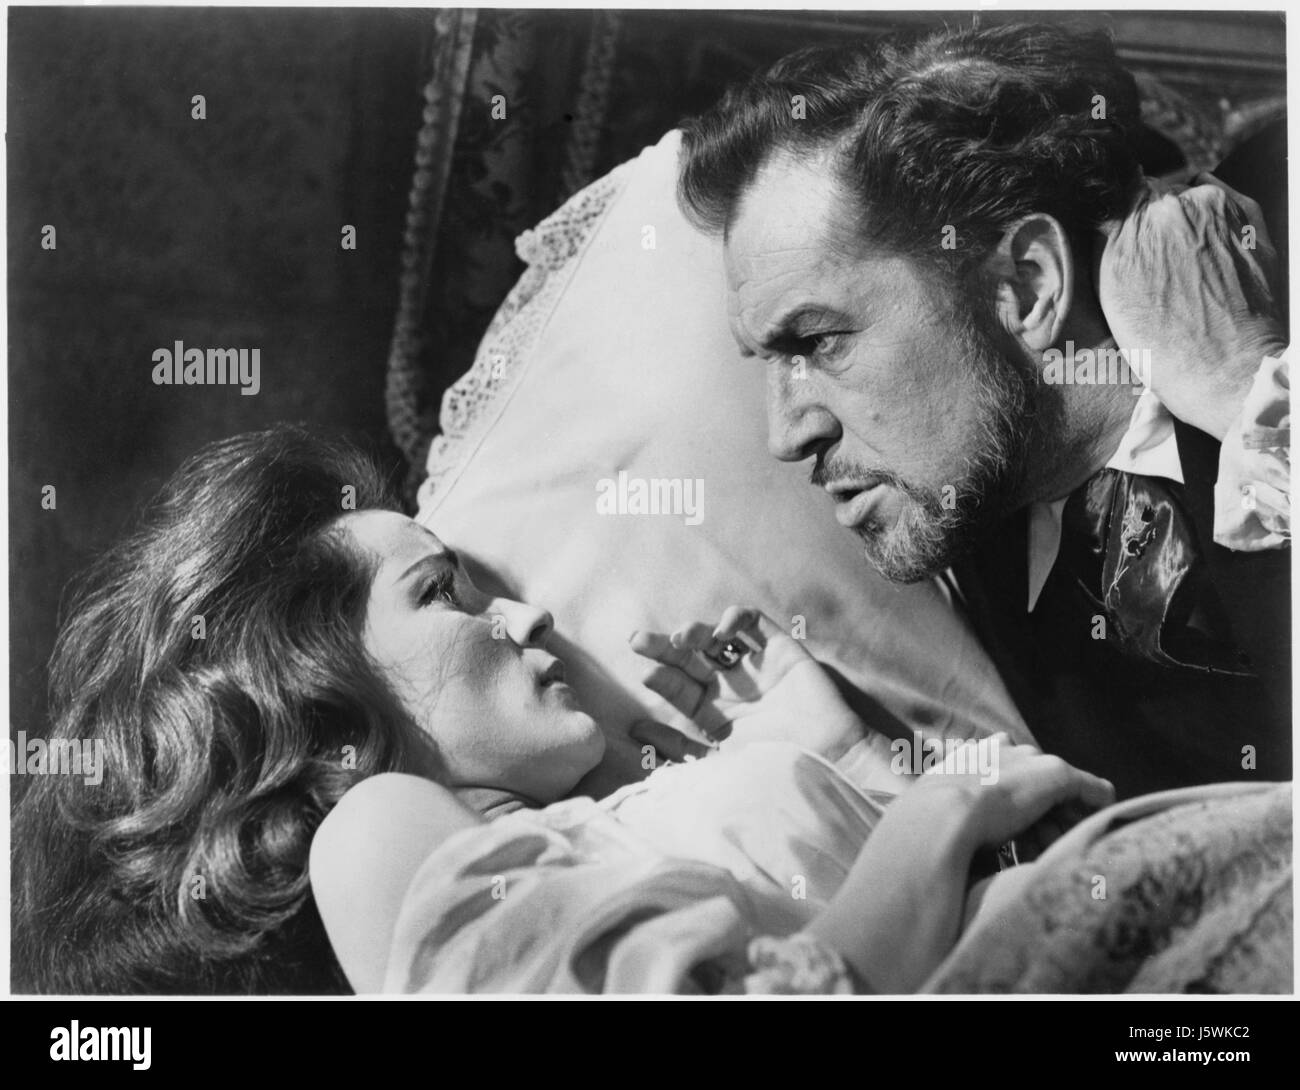 """Debra Paget, Vincent Price, on-set of the Film, """"The Haunted Palace"""", 1963 Stock Photo"""